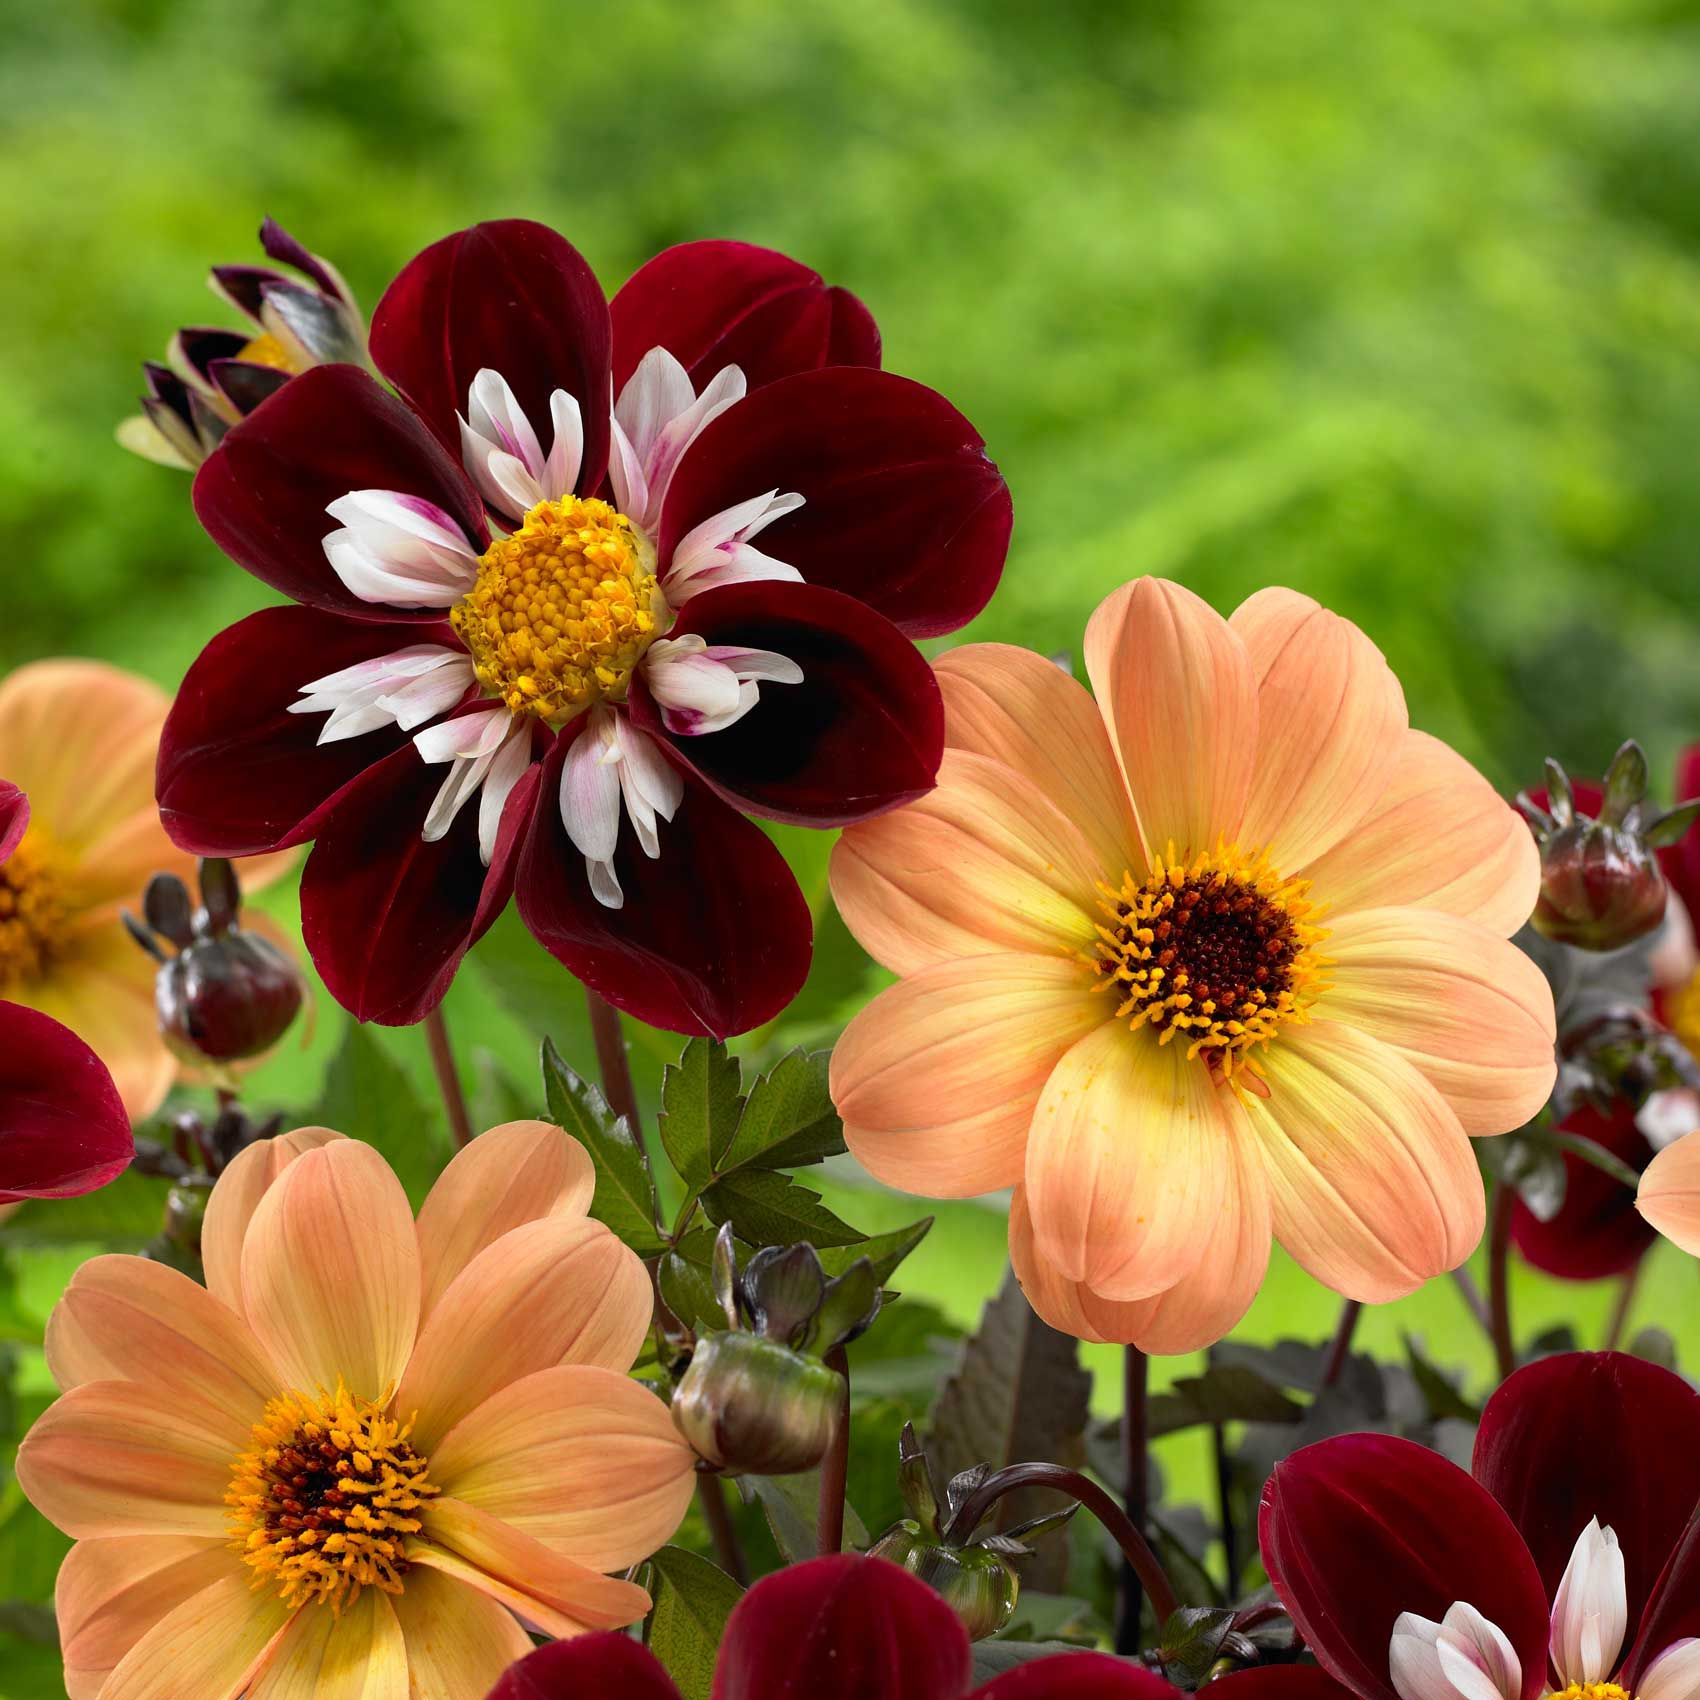 Know your dahlias flower styles and sizes dahlia jiina mignon dahlias have daisy like flowers with a single row of petals around a contrasting center the compact plants often with dark colored foliage izmirmasajfo